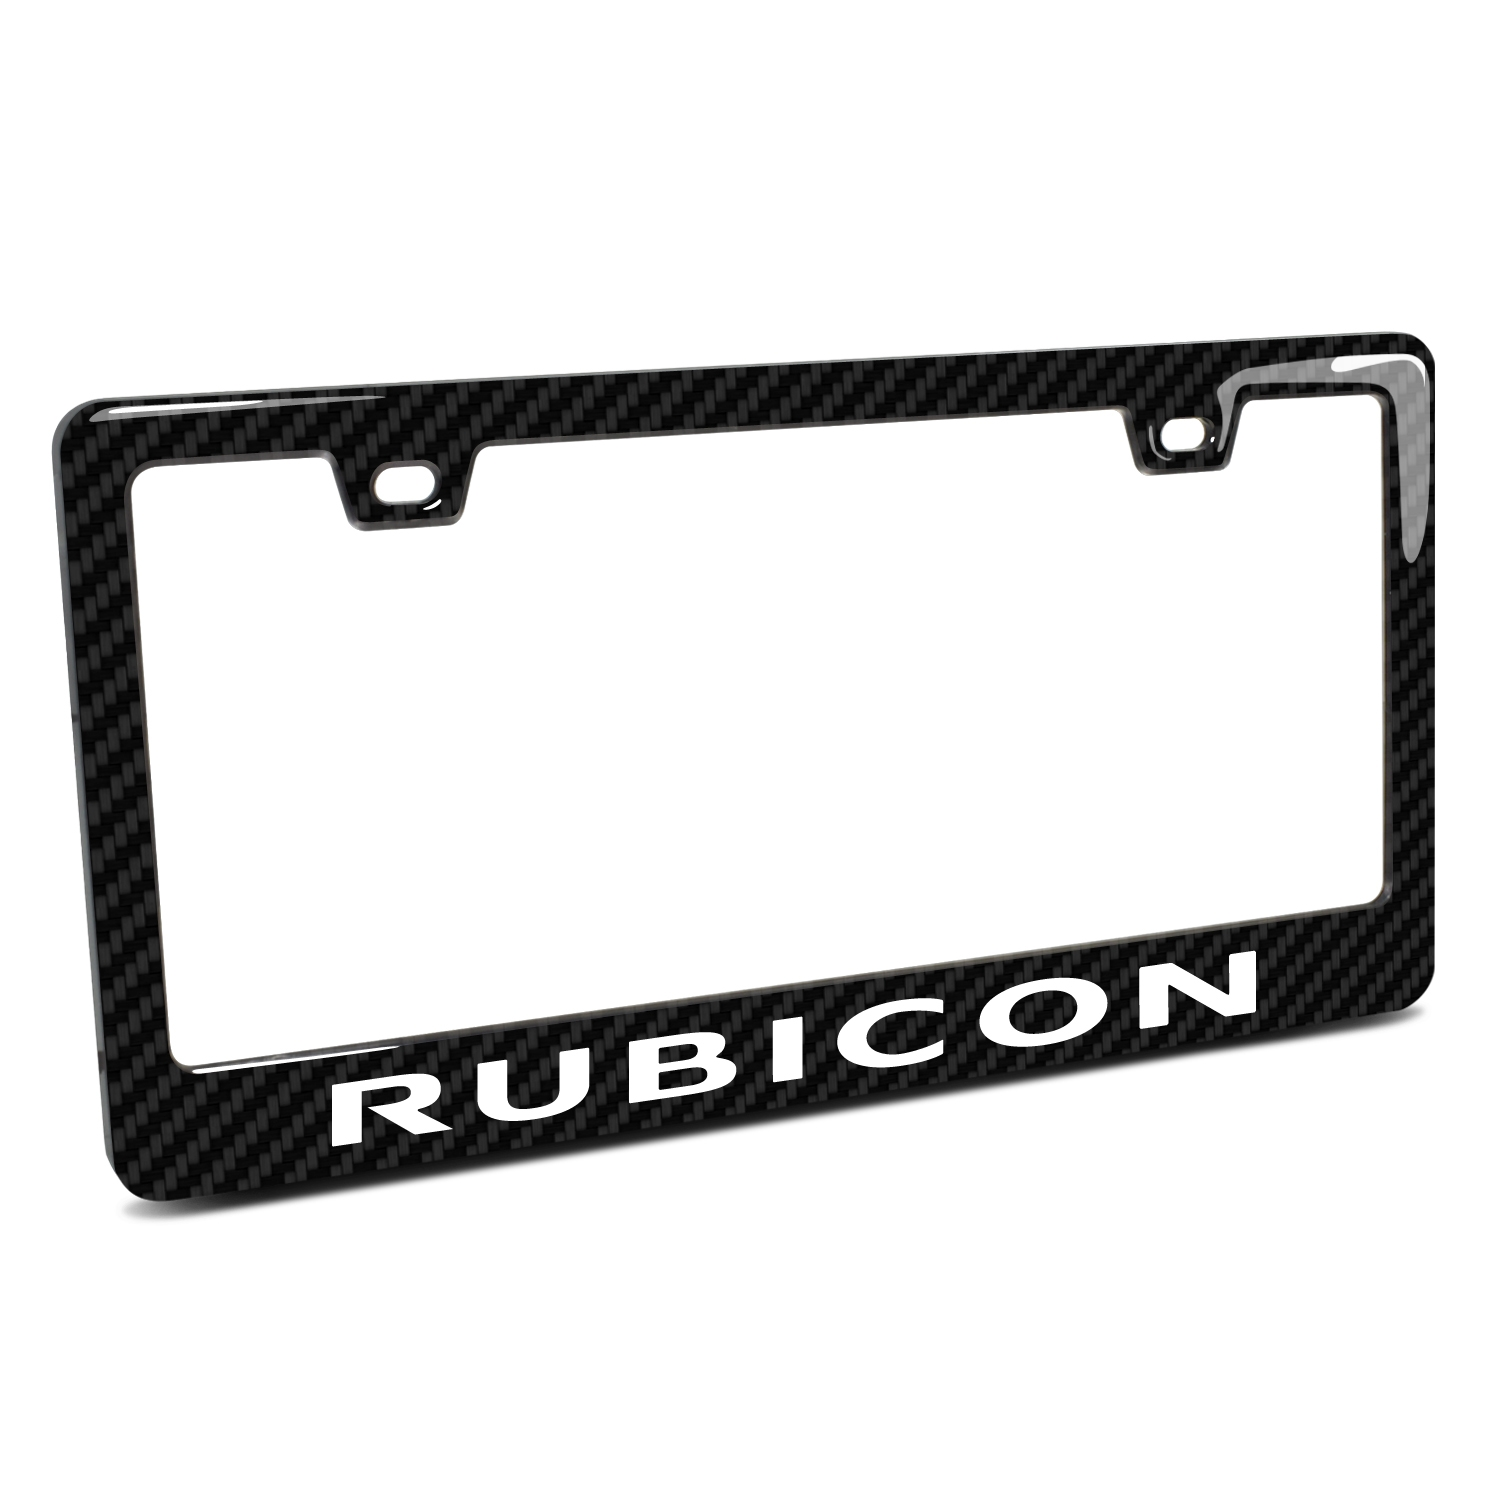 Jeep Rubicon Wrangler Black Real 3K Carbon Fiber Finish ABS Plastic License Plate Frame